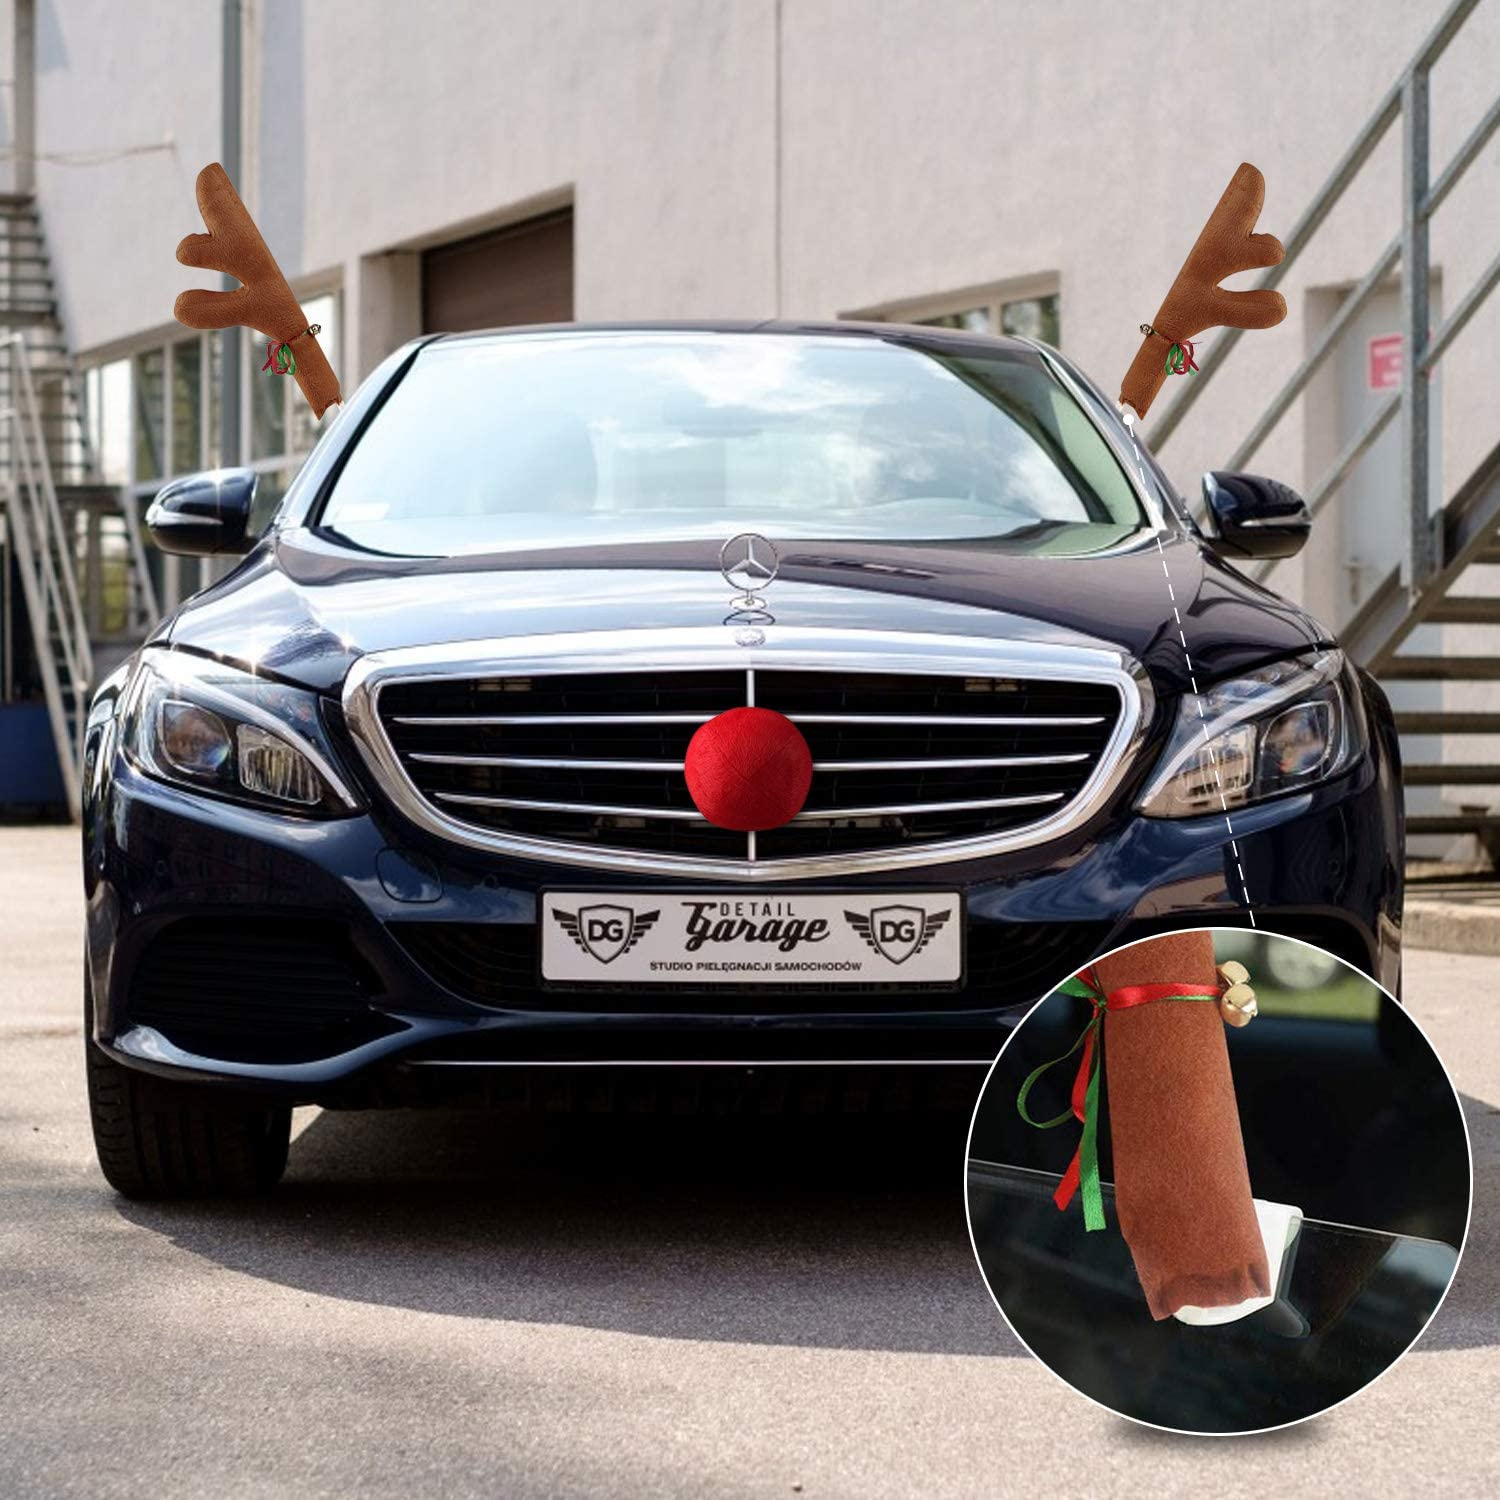 2 Pack Car Reindeer Antlers Christmas Decorations Jingle Bell Reindeer Car Kit for Window Top and Front Grille